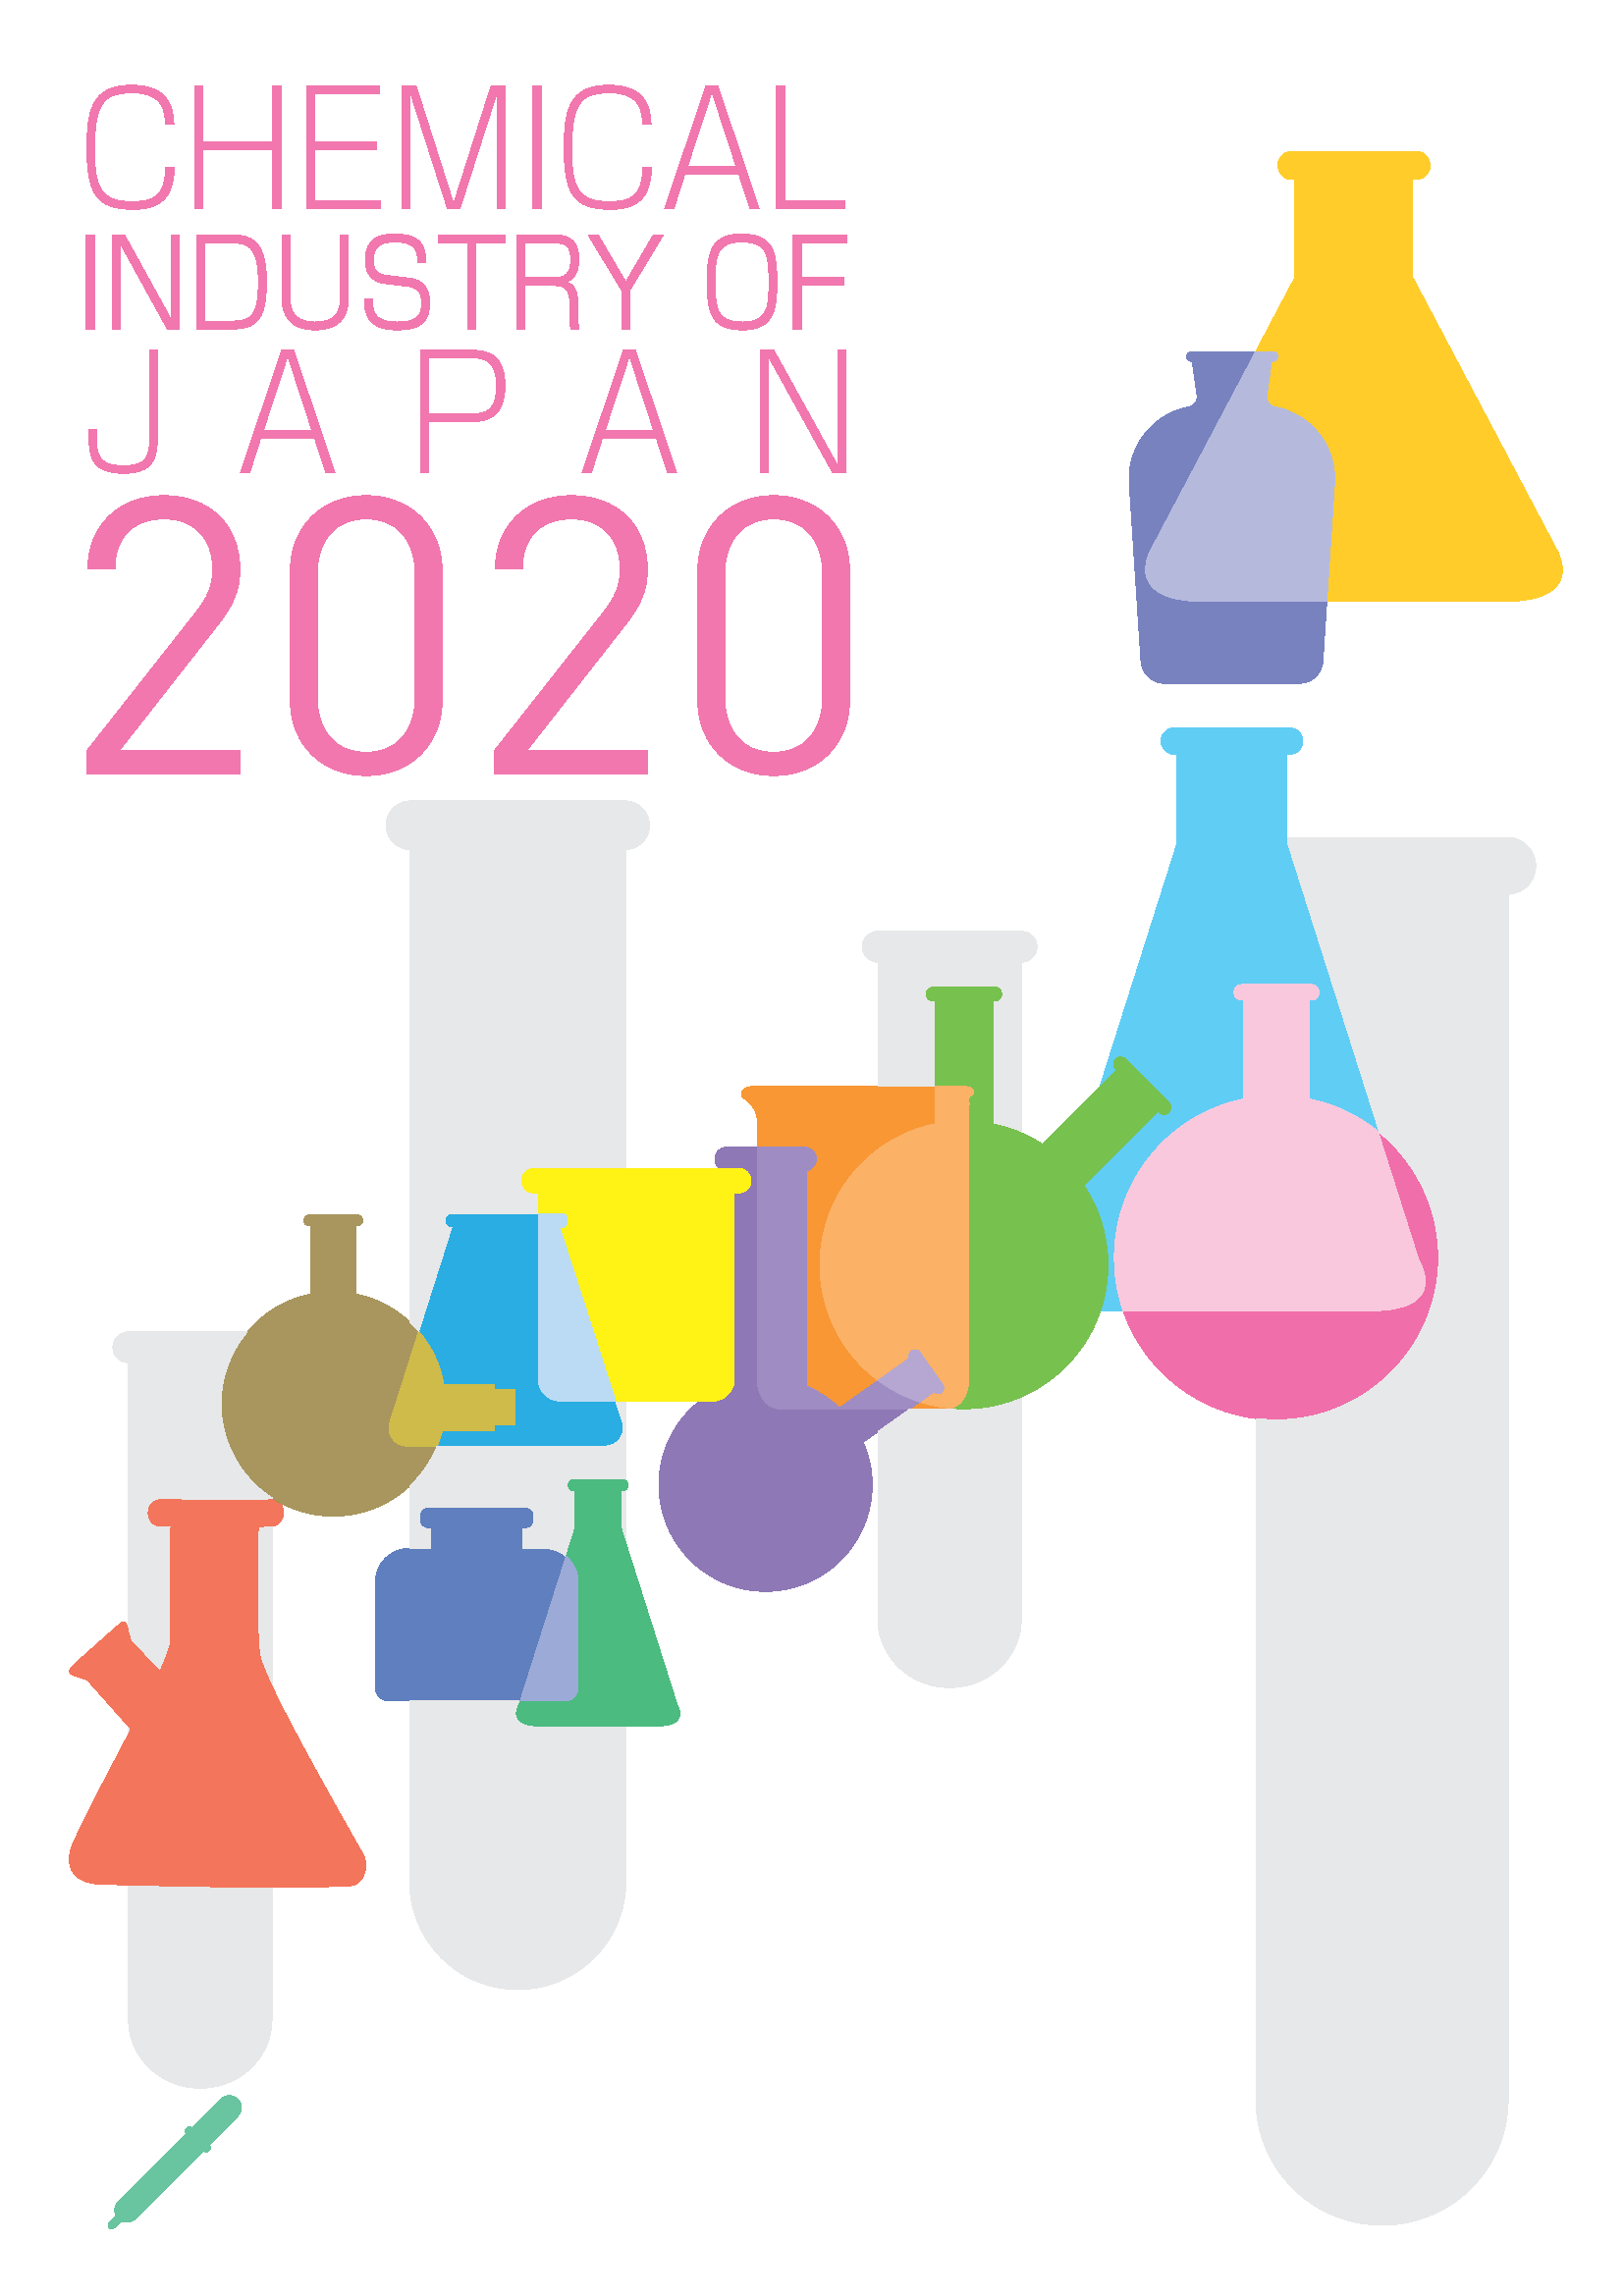 2020 CHEMICAL INDUSTRY OF JAPAN IN GRAPHS